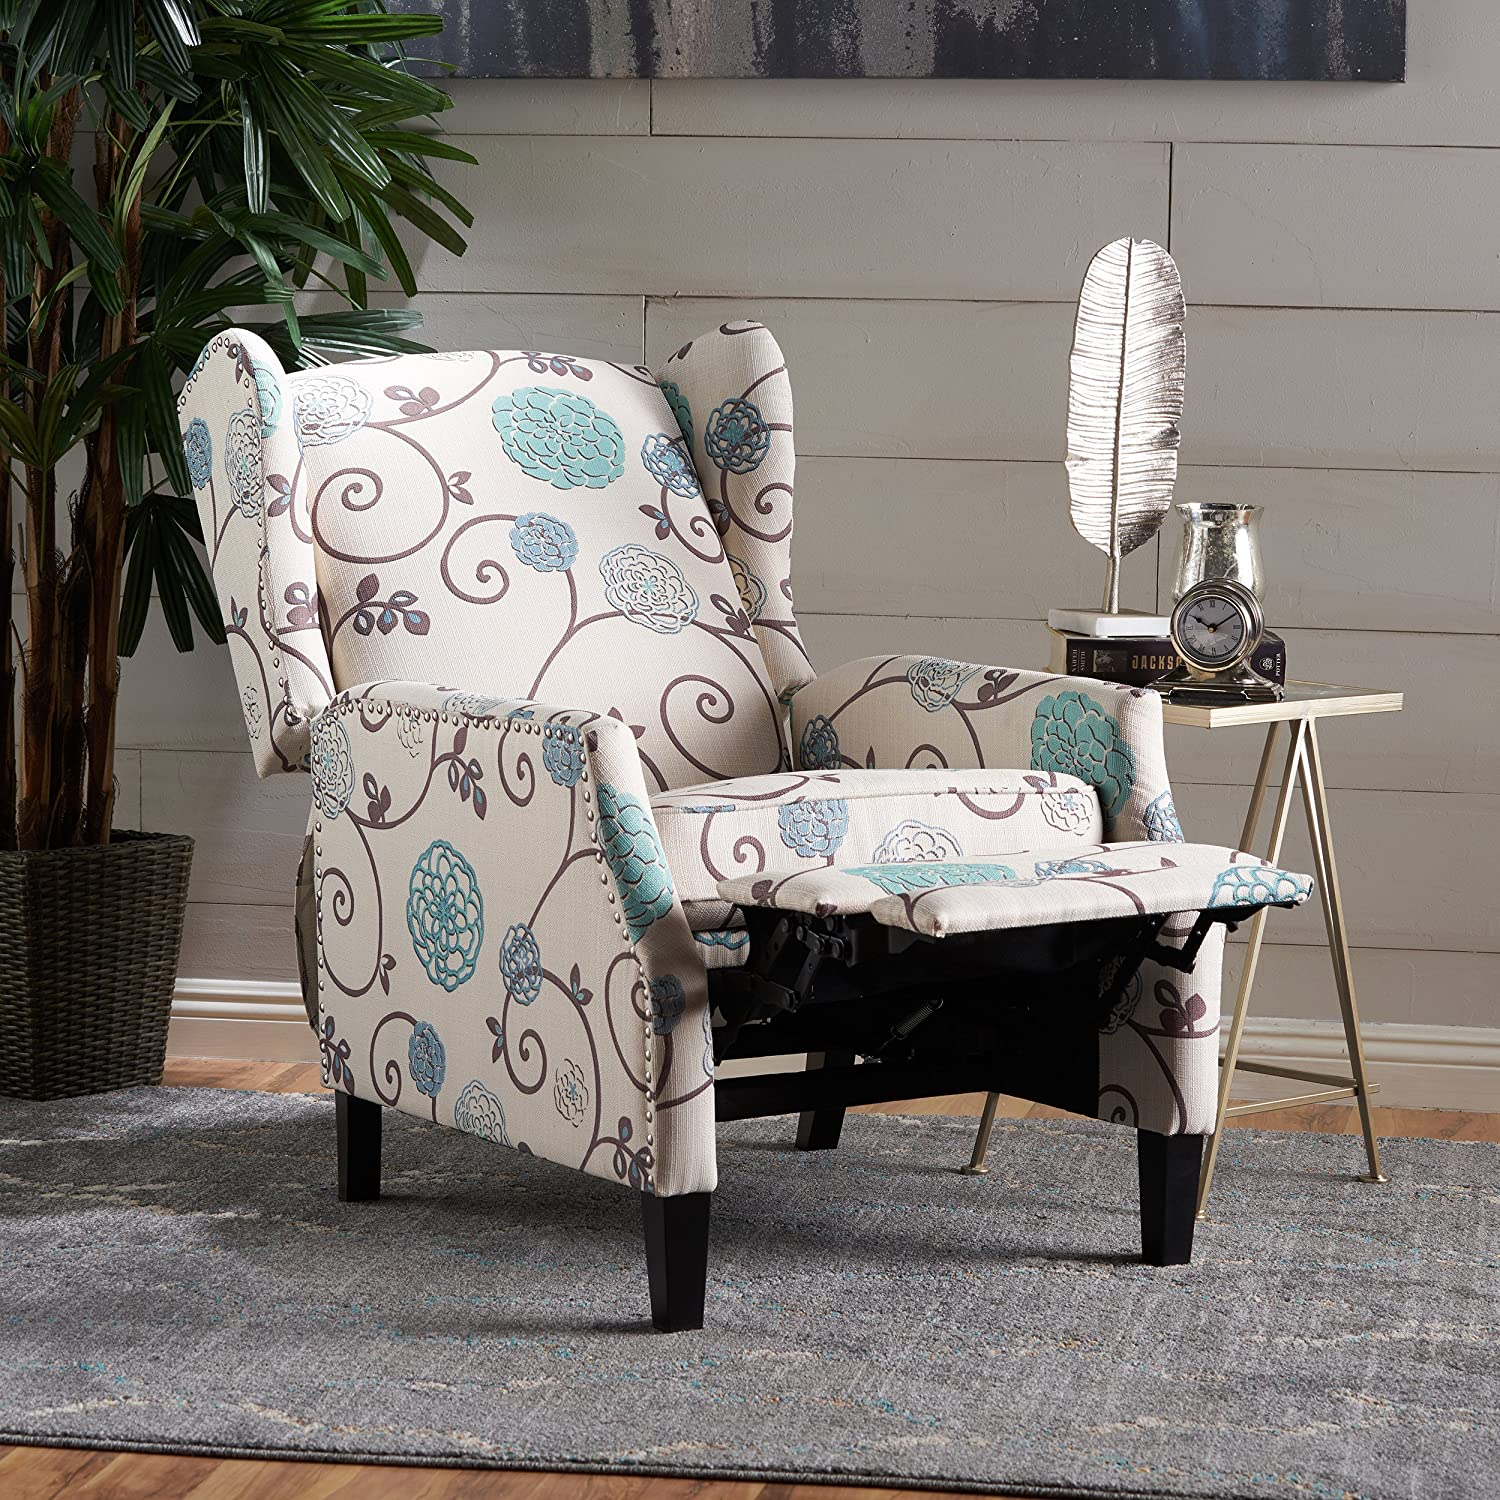 Christopher Knight Home 301080 Westeros Recliner Chair, White Blue Floral